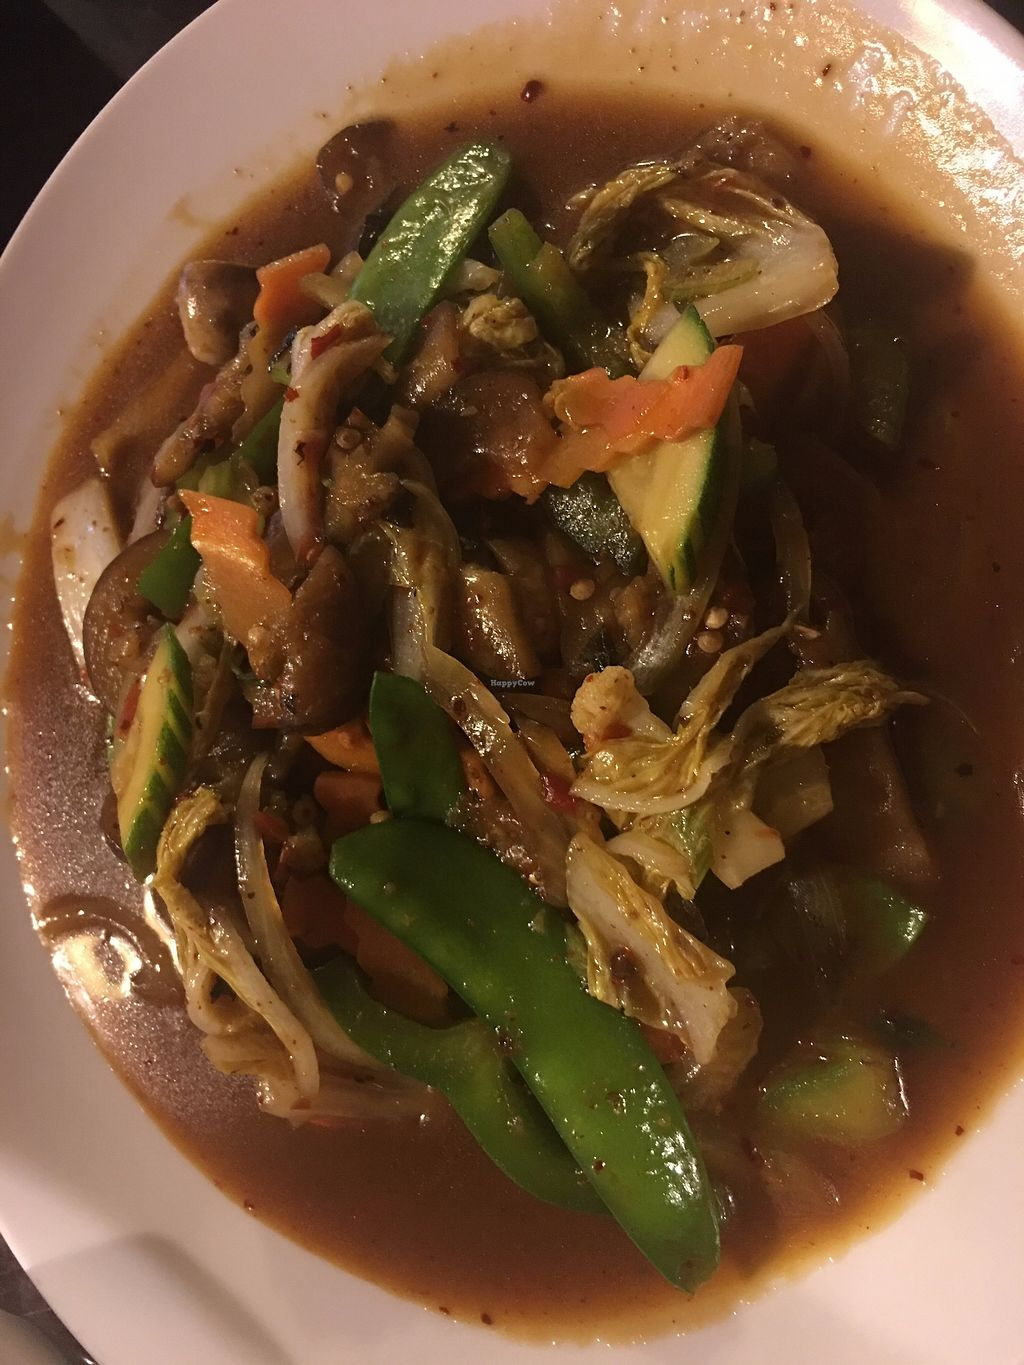 """Photo of Southern Thai Restaurant  by <a href=""""/members/profile/TraciH"""">TraciH</a> <br/>Basil Eggplant with Vegetables <br/> November 13, 2017  - <a href='/contact/abuse/image/105005/325332'>Report</a>"""